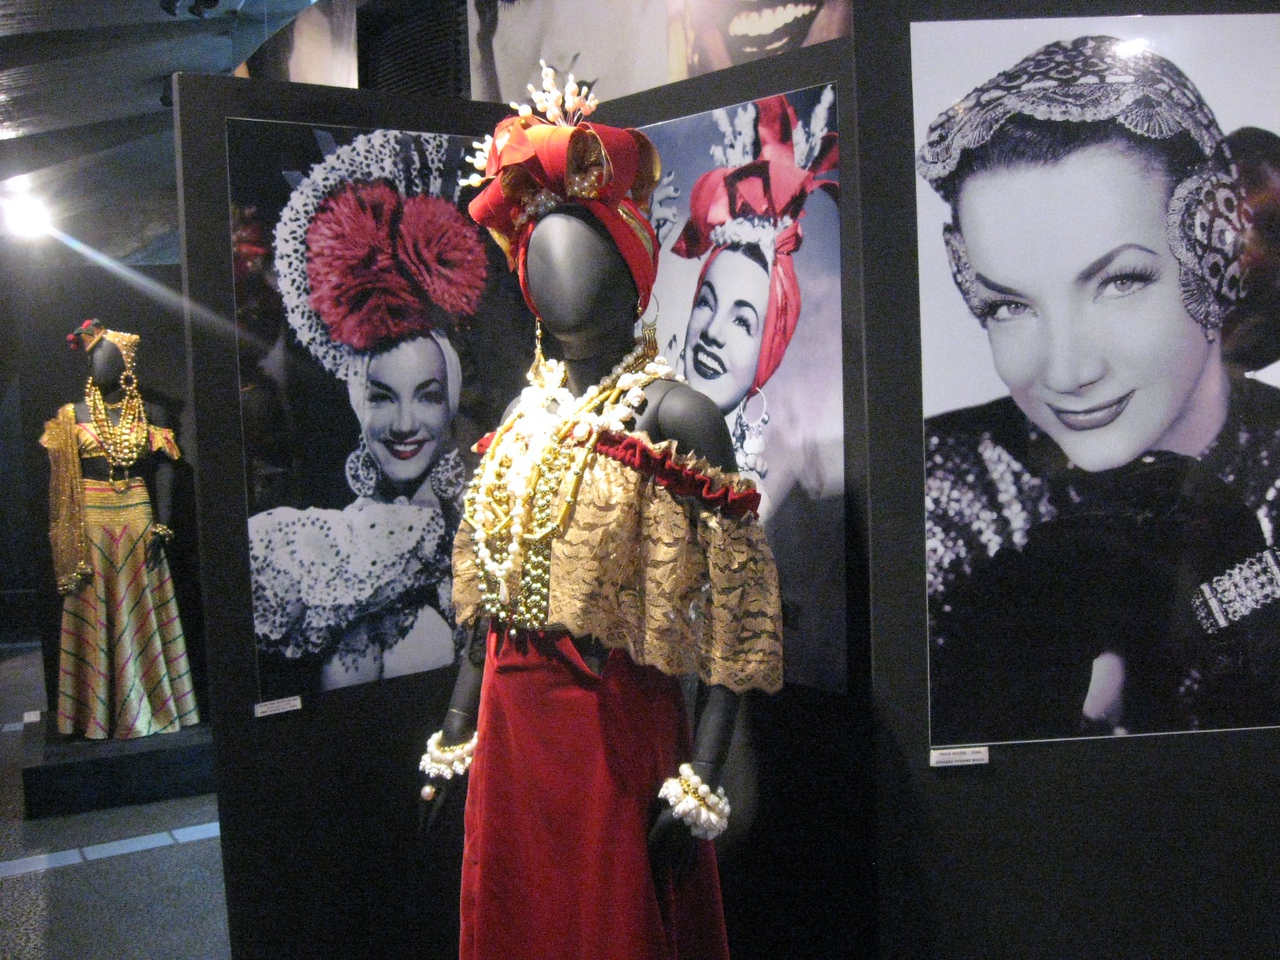 One of Miranda's outfits on display surrounded by black-and-white photos of the star.